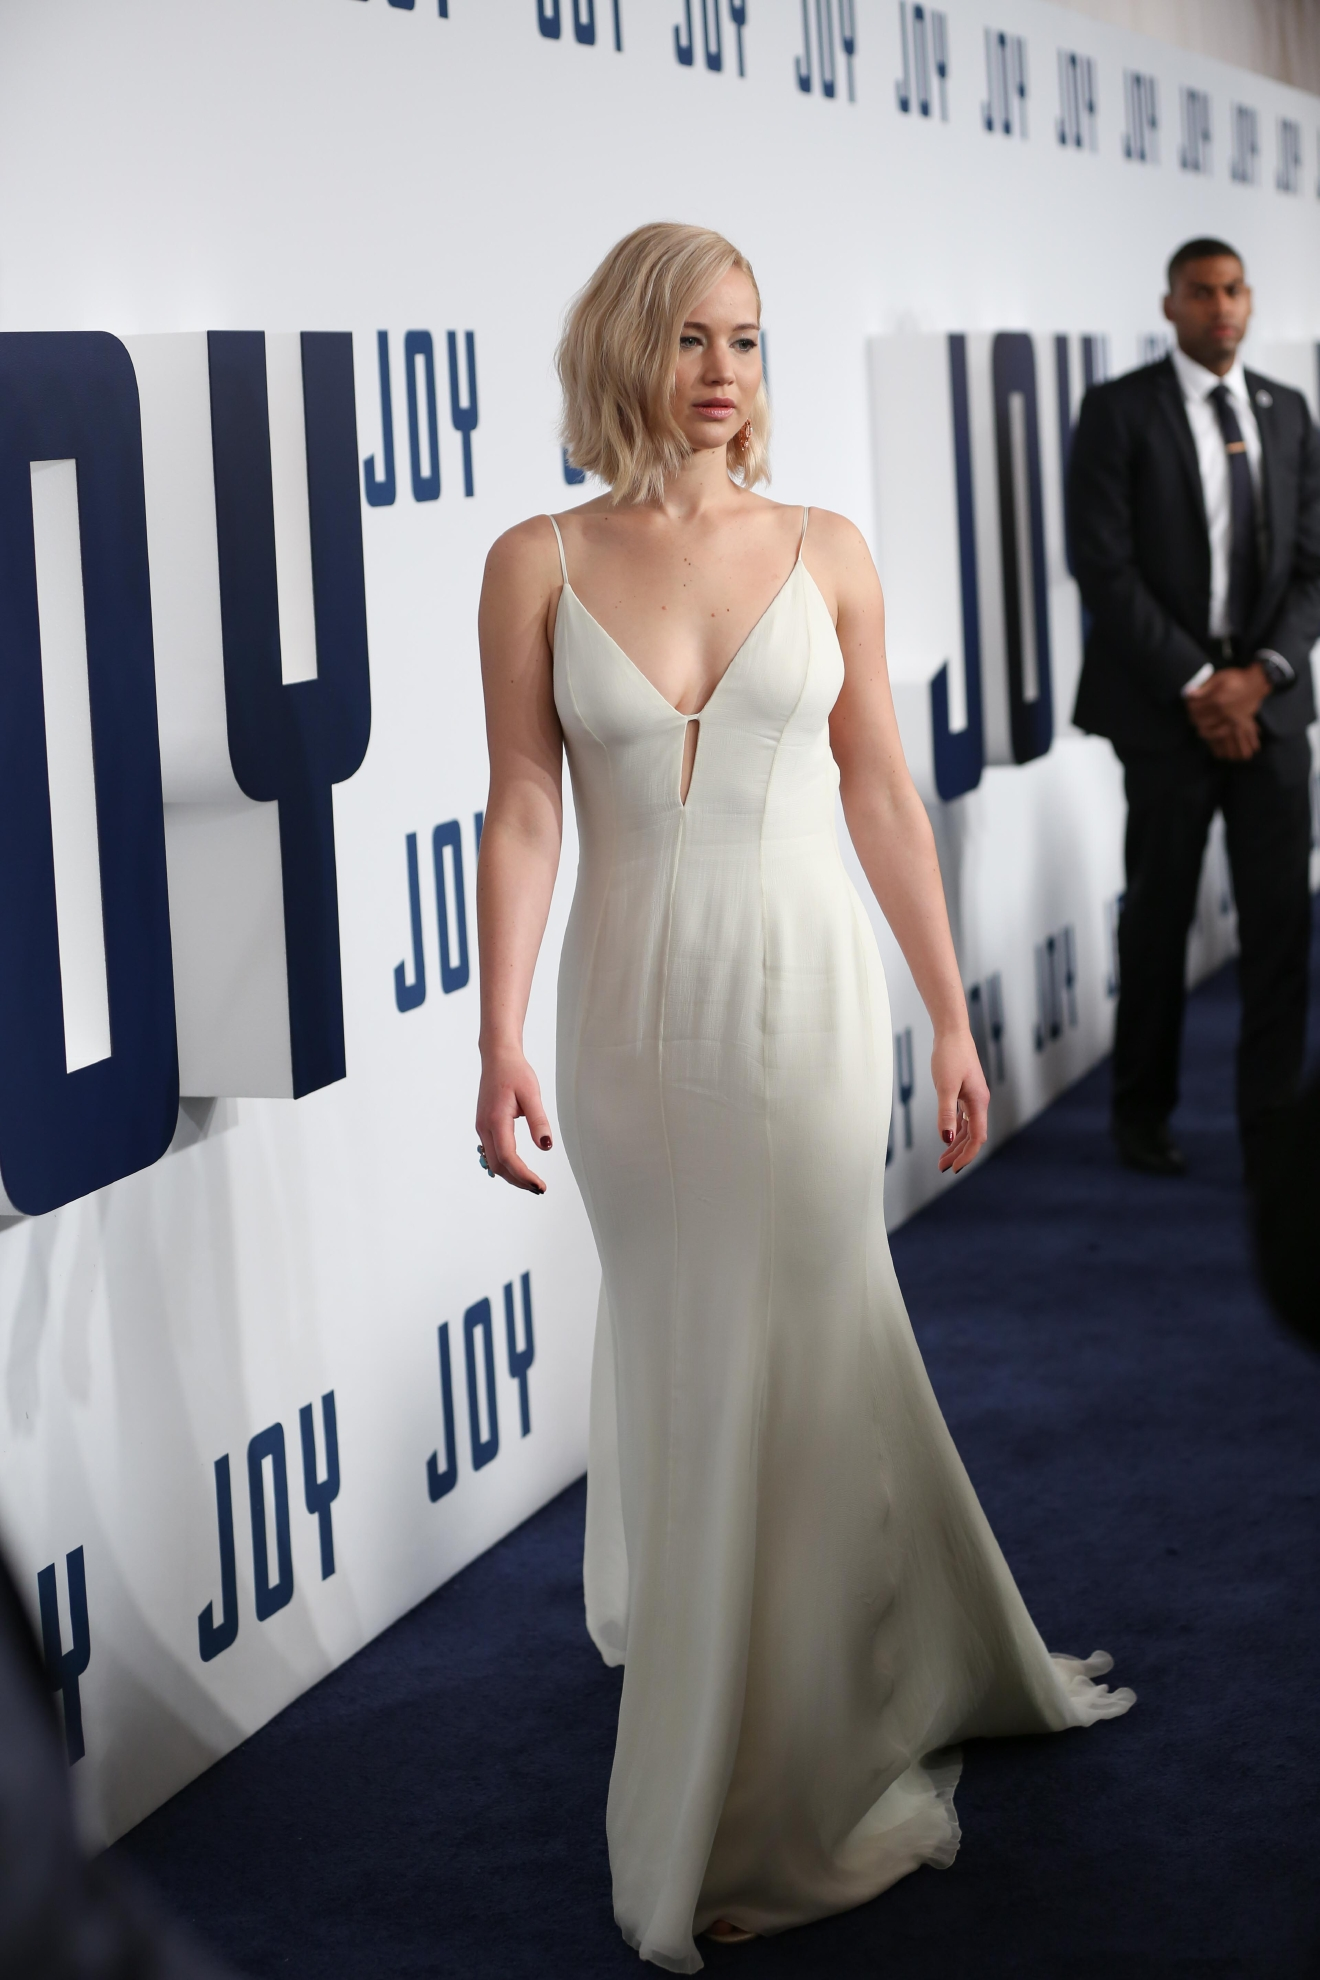 New York premiere of 'Joy' at the Ziegfeld Theater - Arrivals  Featuring: Jennifer Lawrence Where: New York, United States When: 13 Dec 2015 Credit: Andres Otero/WENN.com